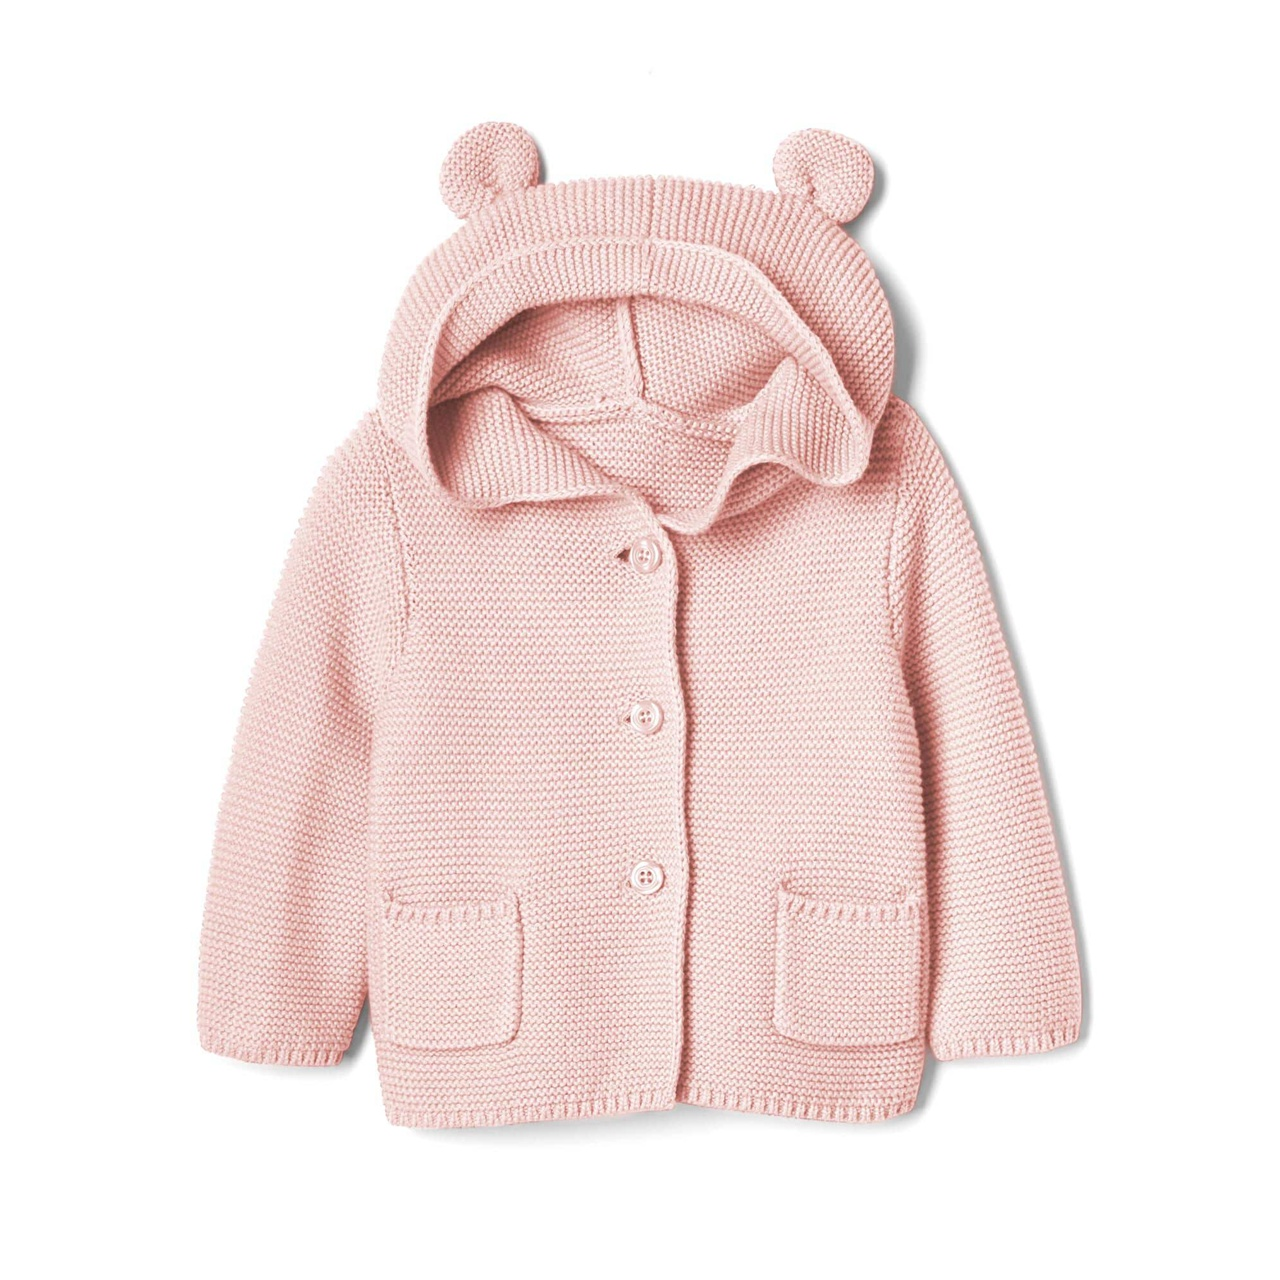 USD 49.43] Gap Boys and girls pure cotton baby bear ear sweater ...